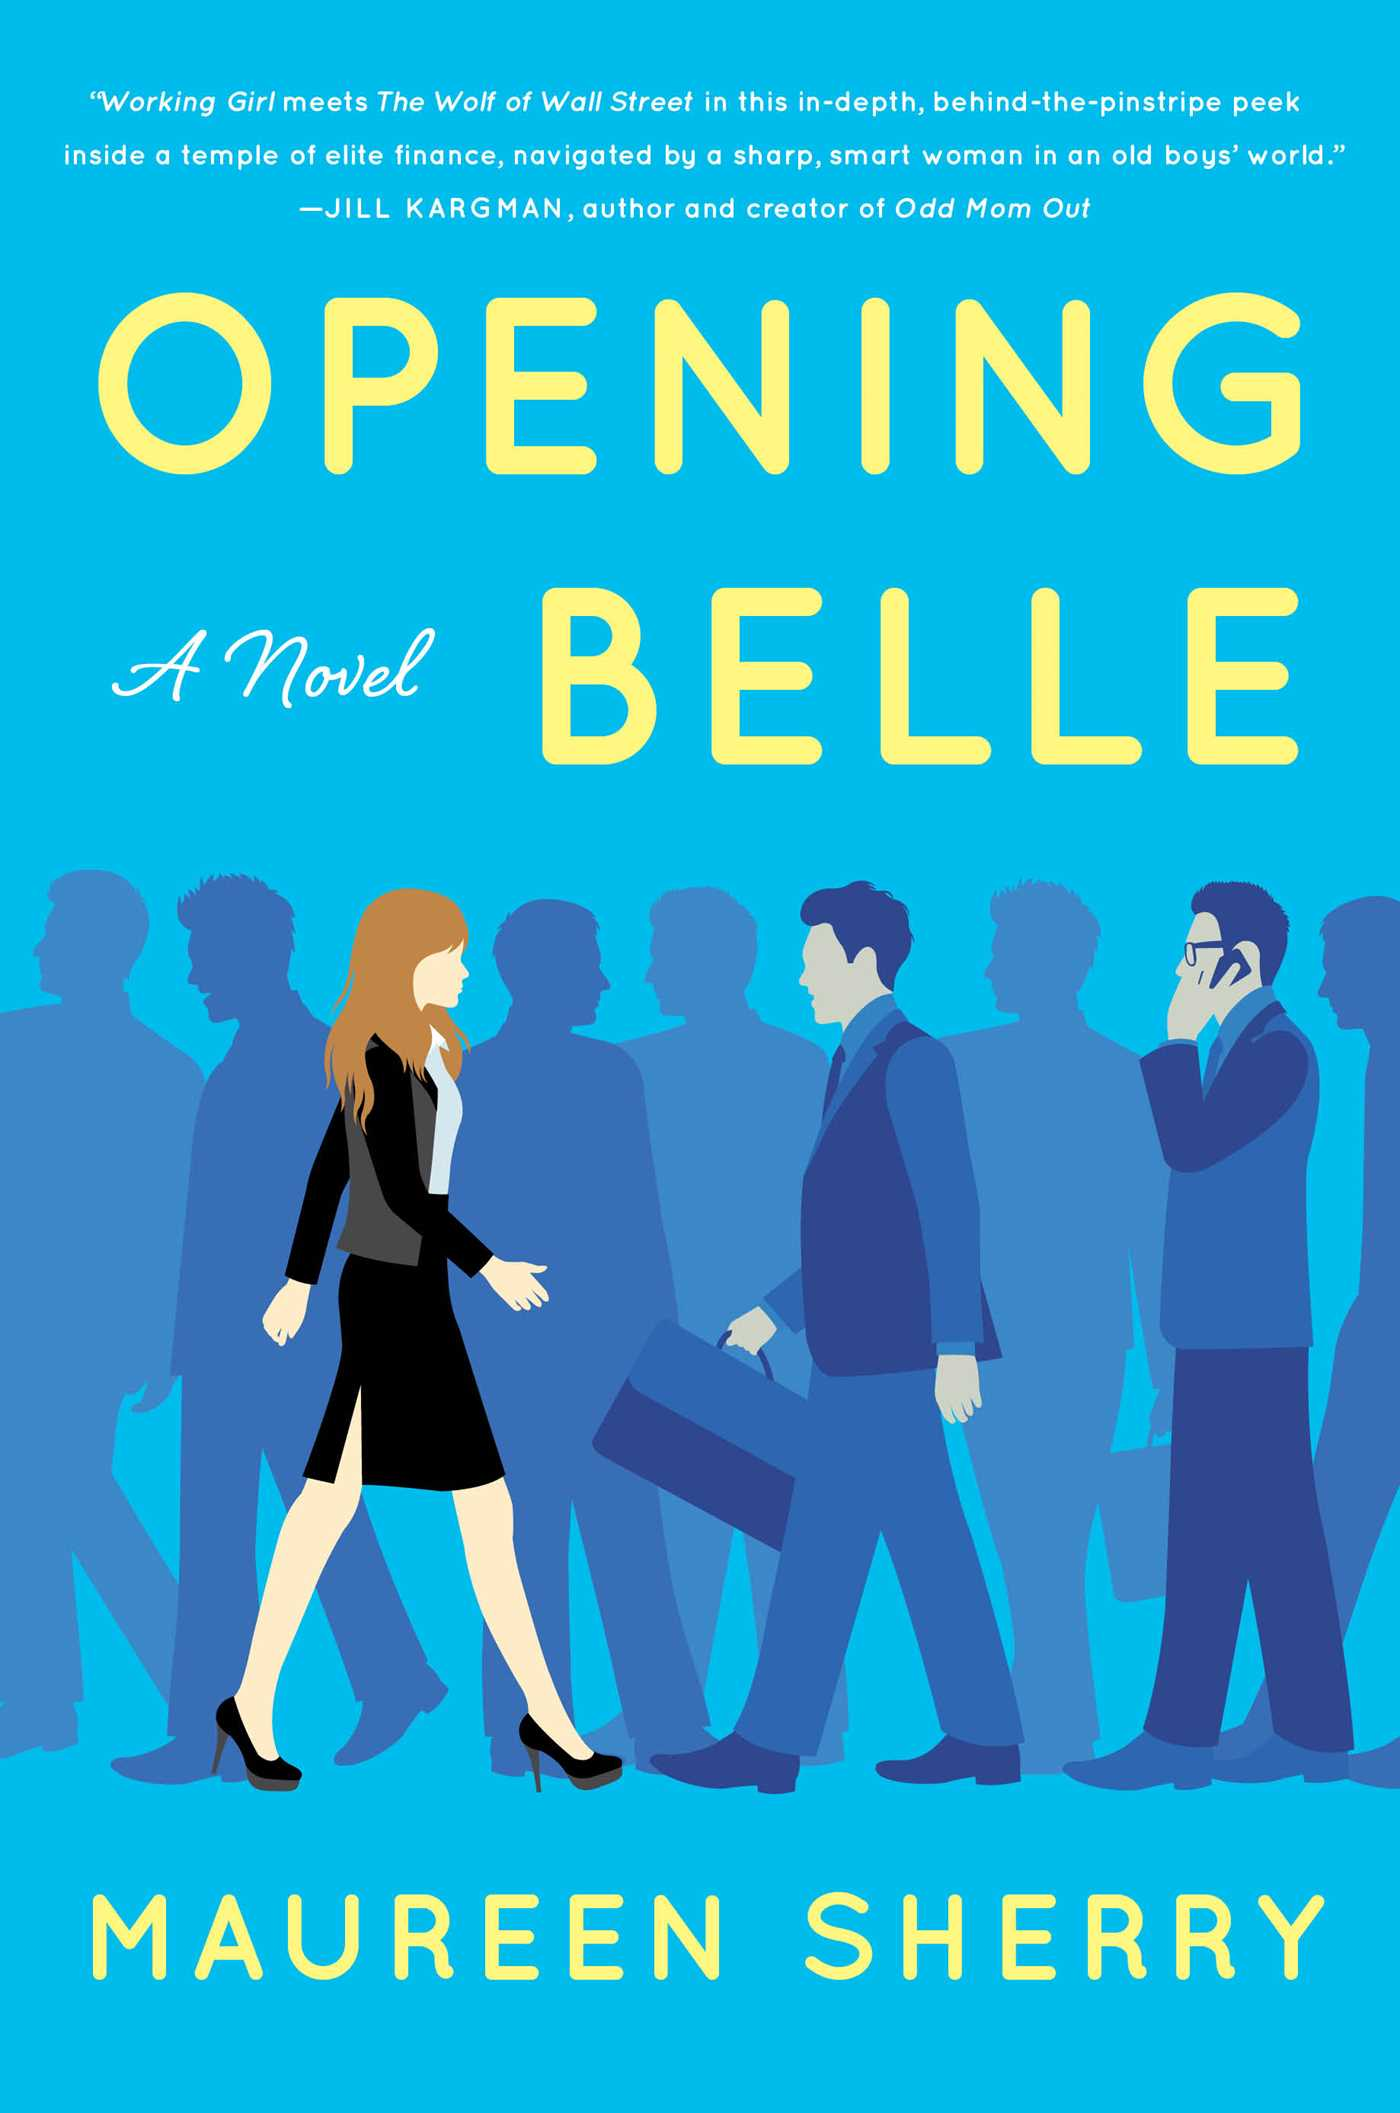 Opening Belle | Book by Maureen Sherry | Official Publisher Page ...